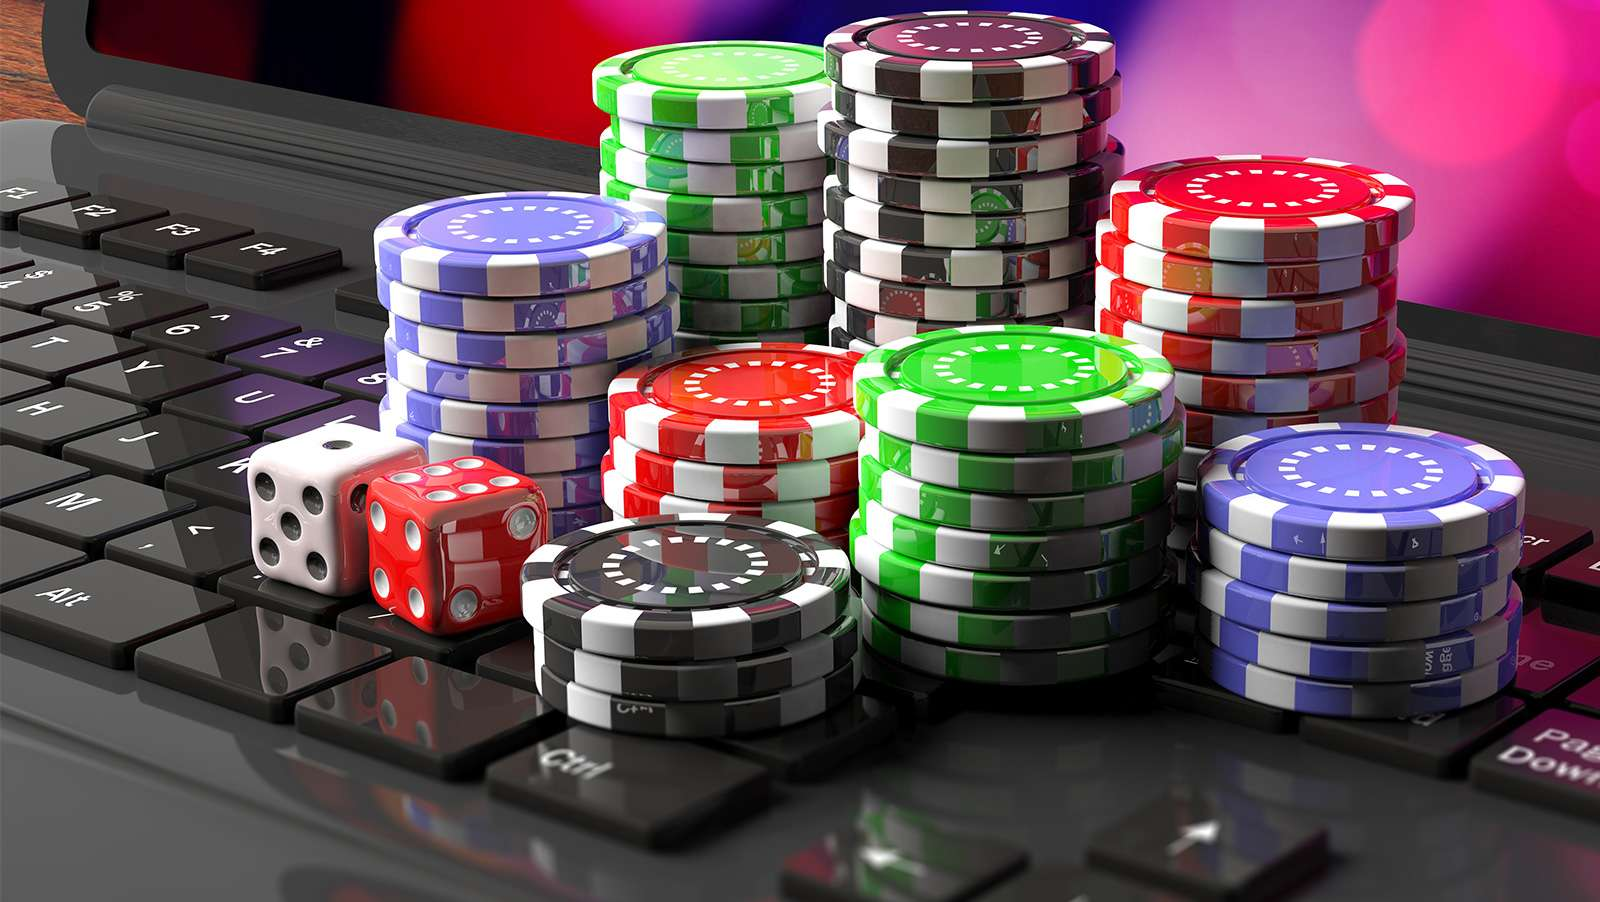 Best Online Casino Software Providers That Support The Gambling Industry